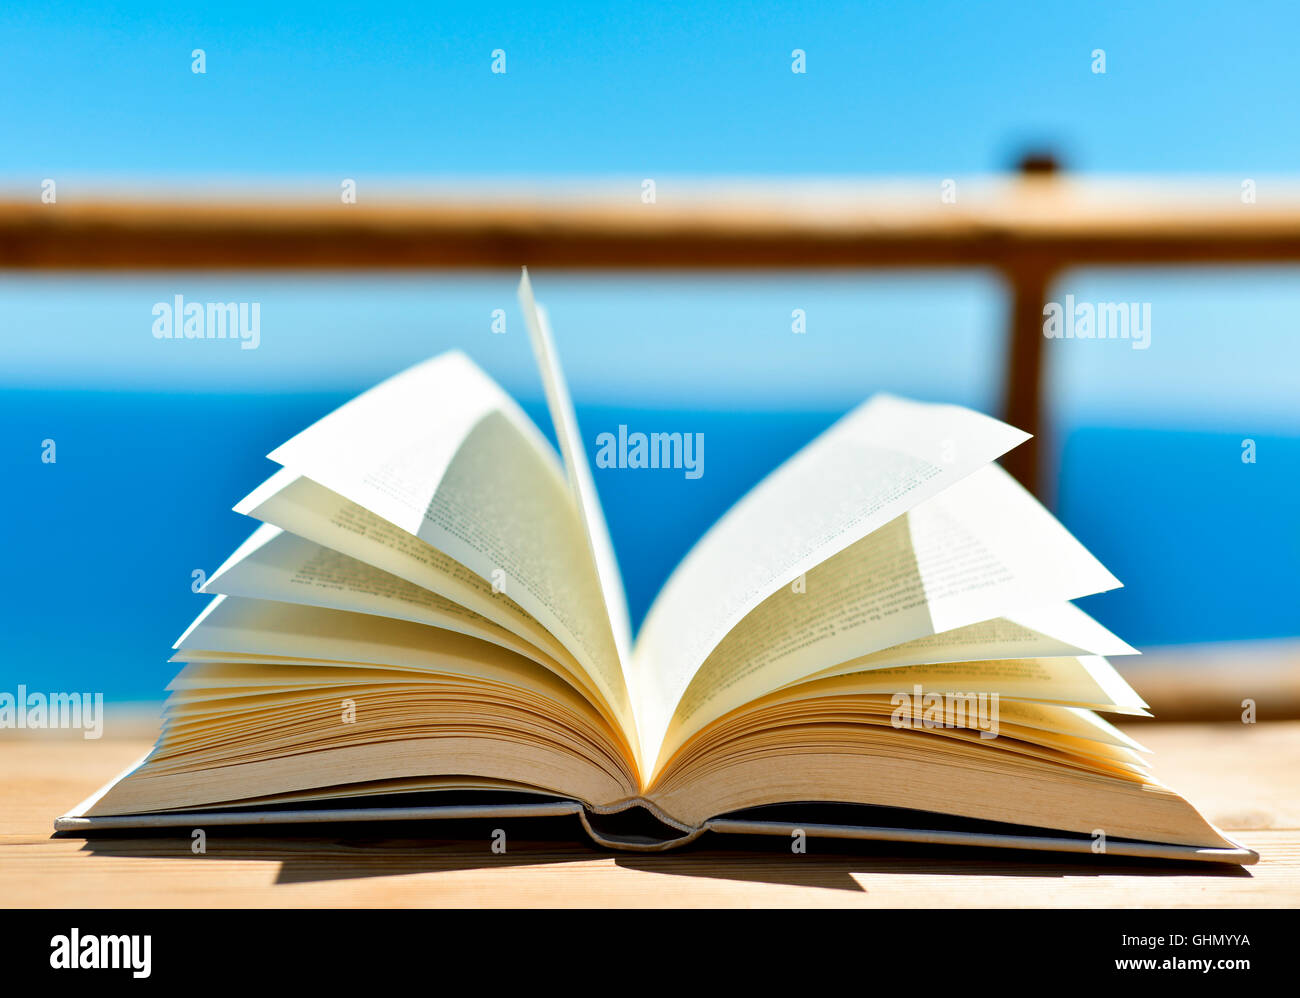 closeup of an open book on a wooden table outdoors, with the ocean in the background - Stock Image